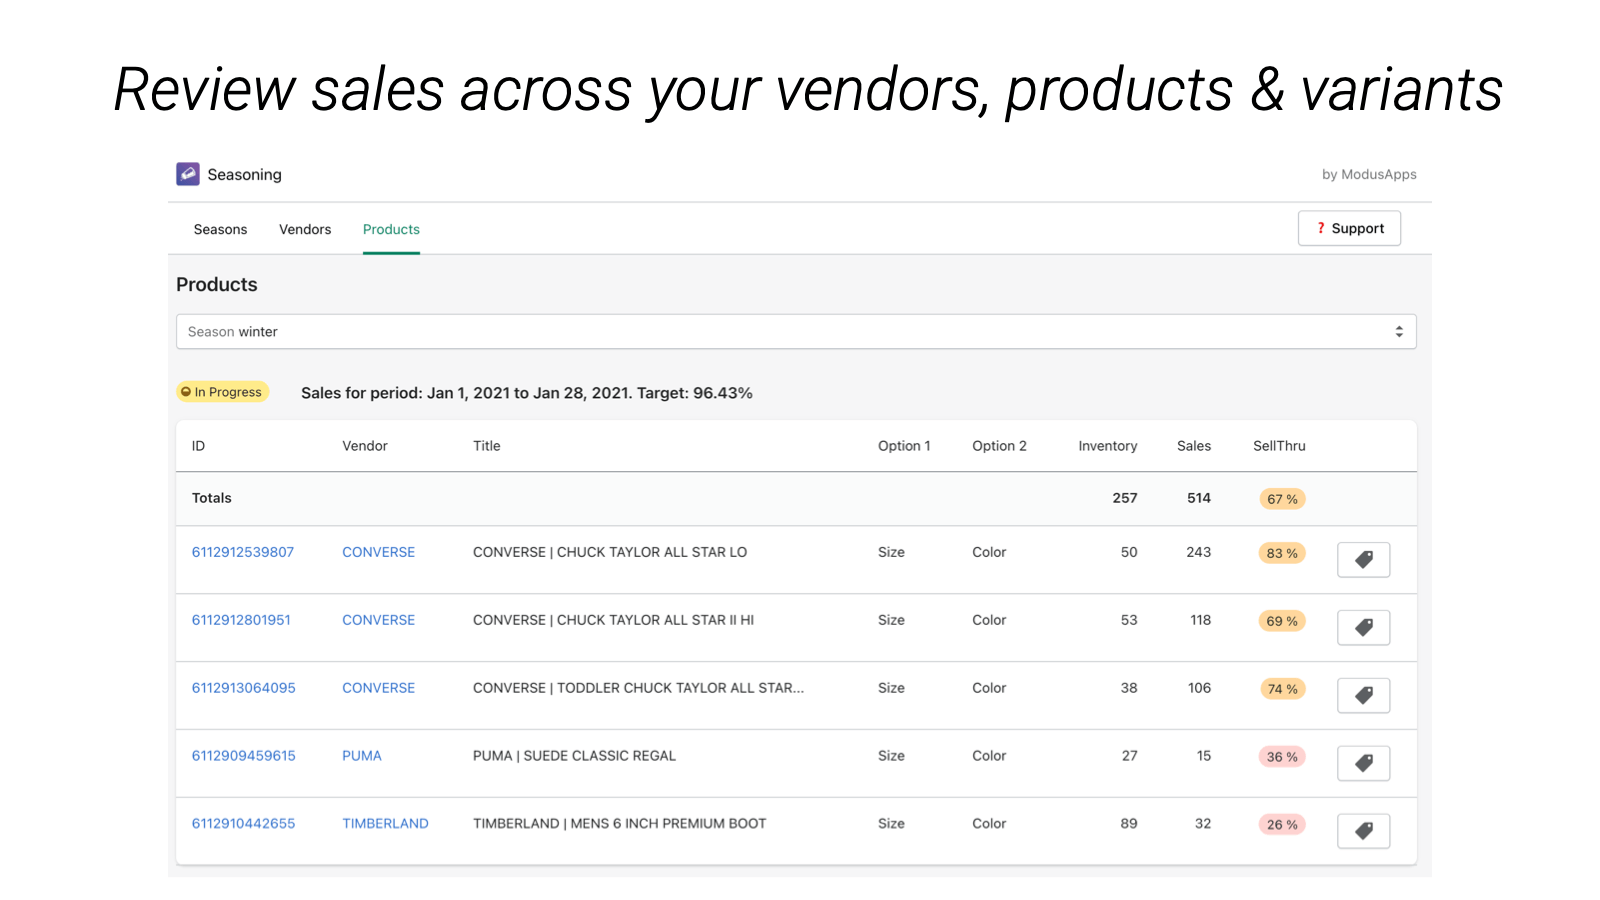 Review sales across your vendors, products & variants.